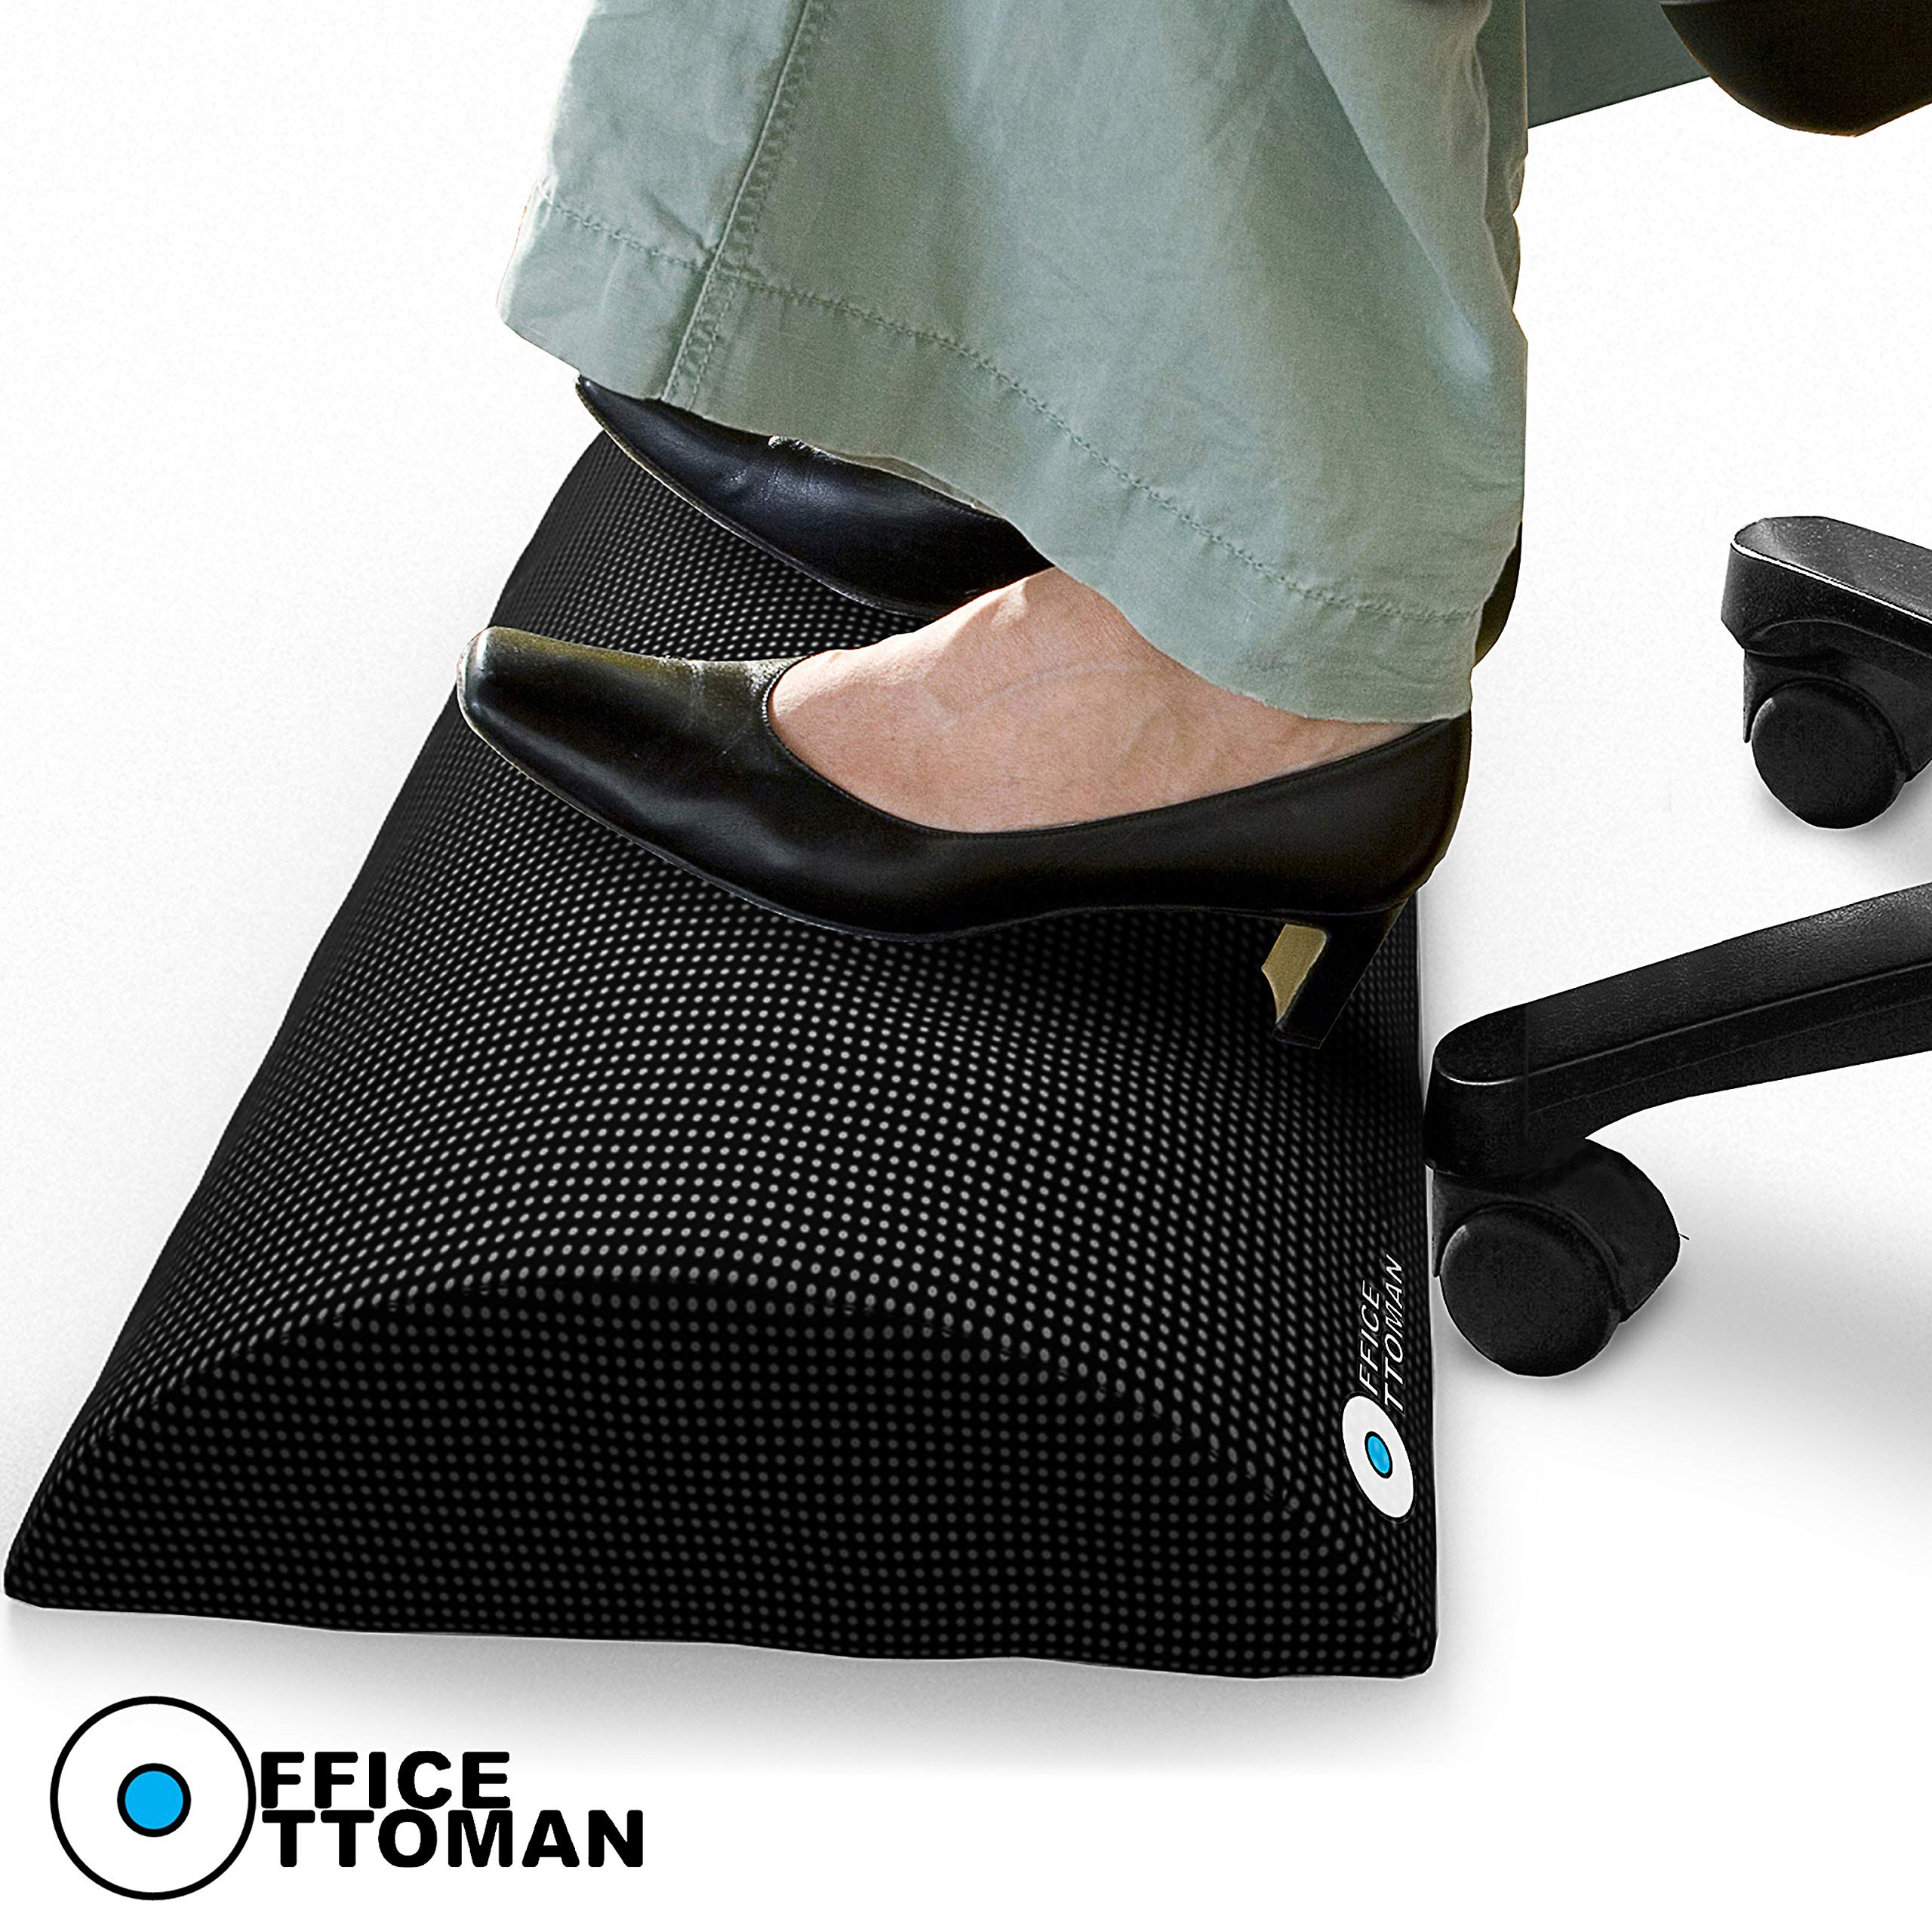 Foot Rest Under Desk Non-Slip Ergonomic Footrest Foam Cushion - Excellent Under Desk Leg Clearance, by Office Ottoman by OFFICE OTTOMAN